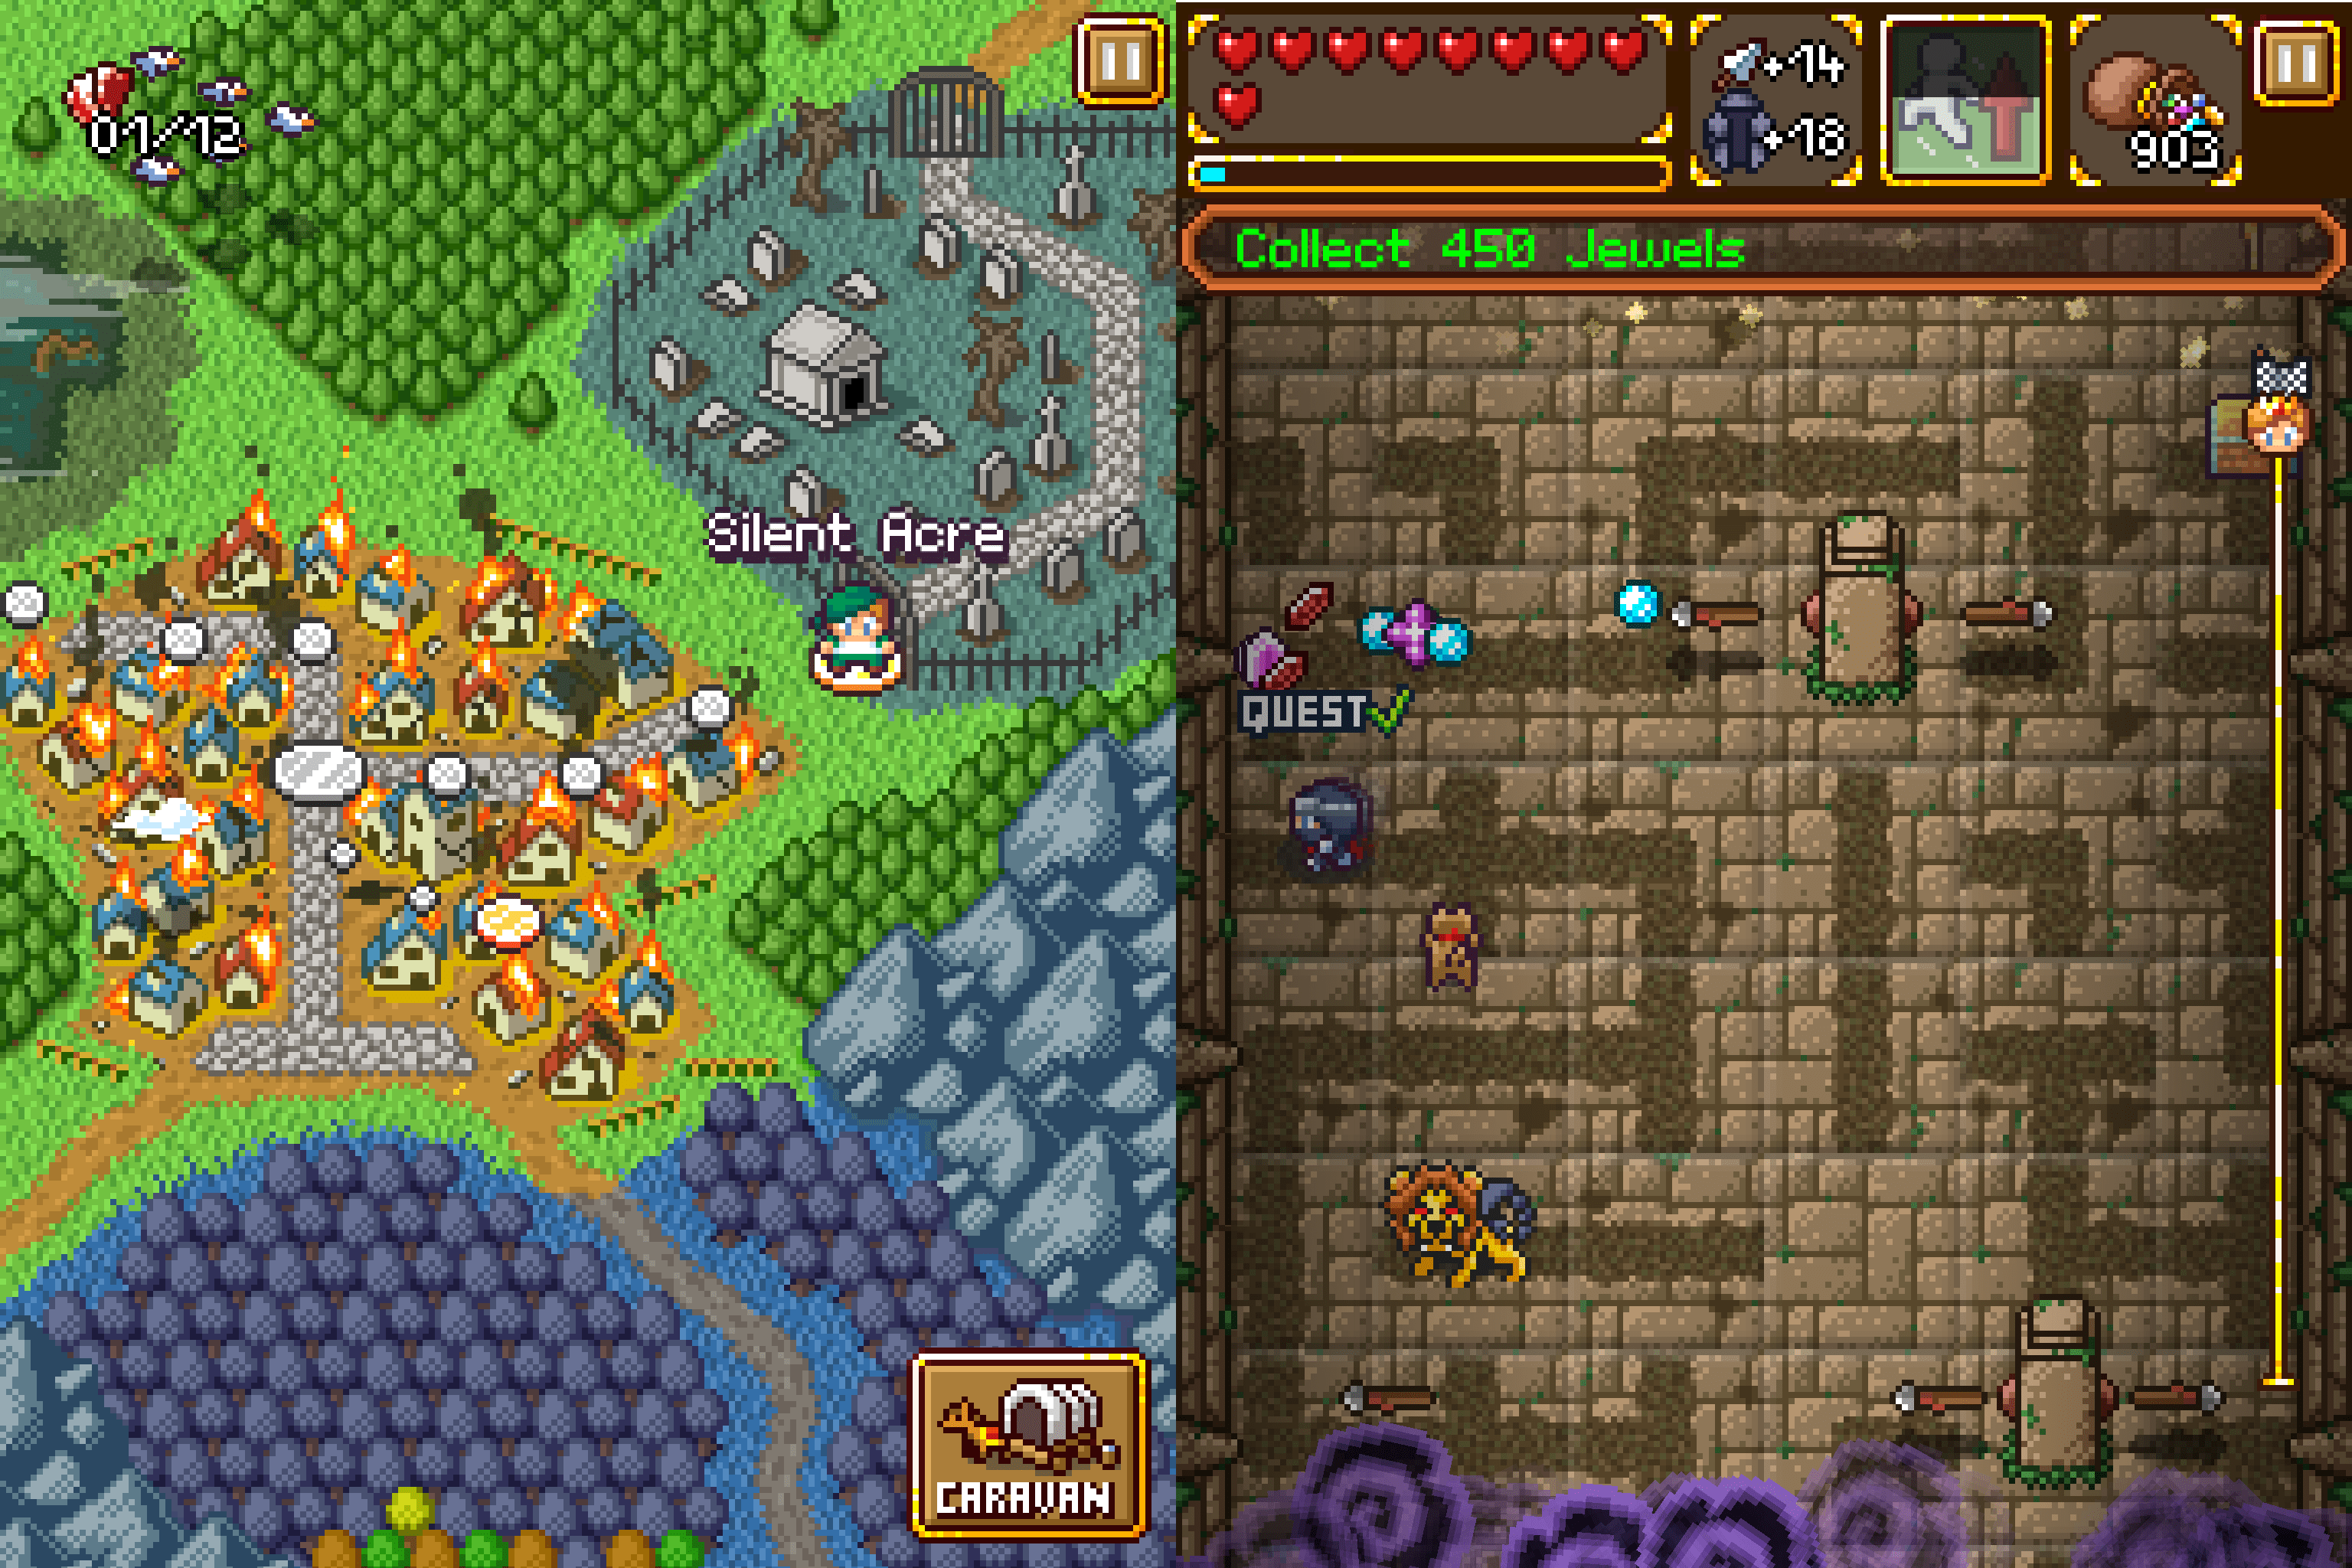 SwapQuest has echoes of older role-playing games, but it brings a fresh twist with its puzzle mechanics.